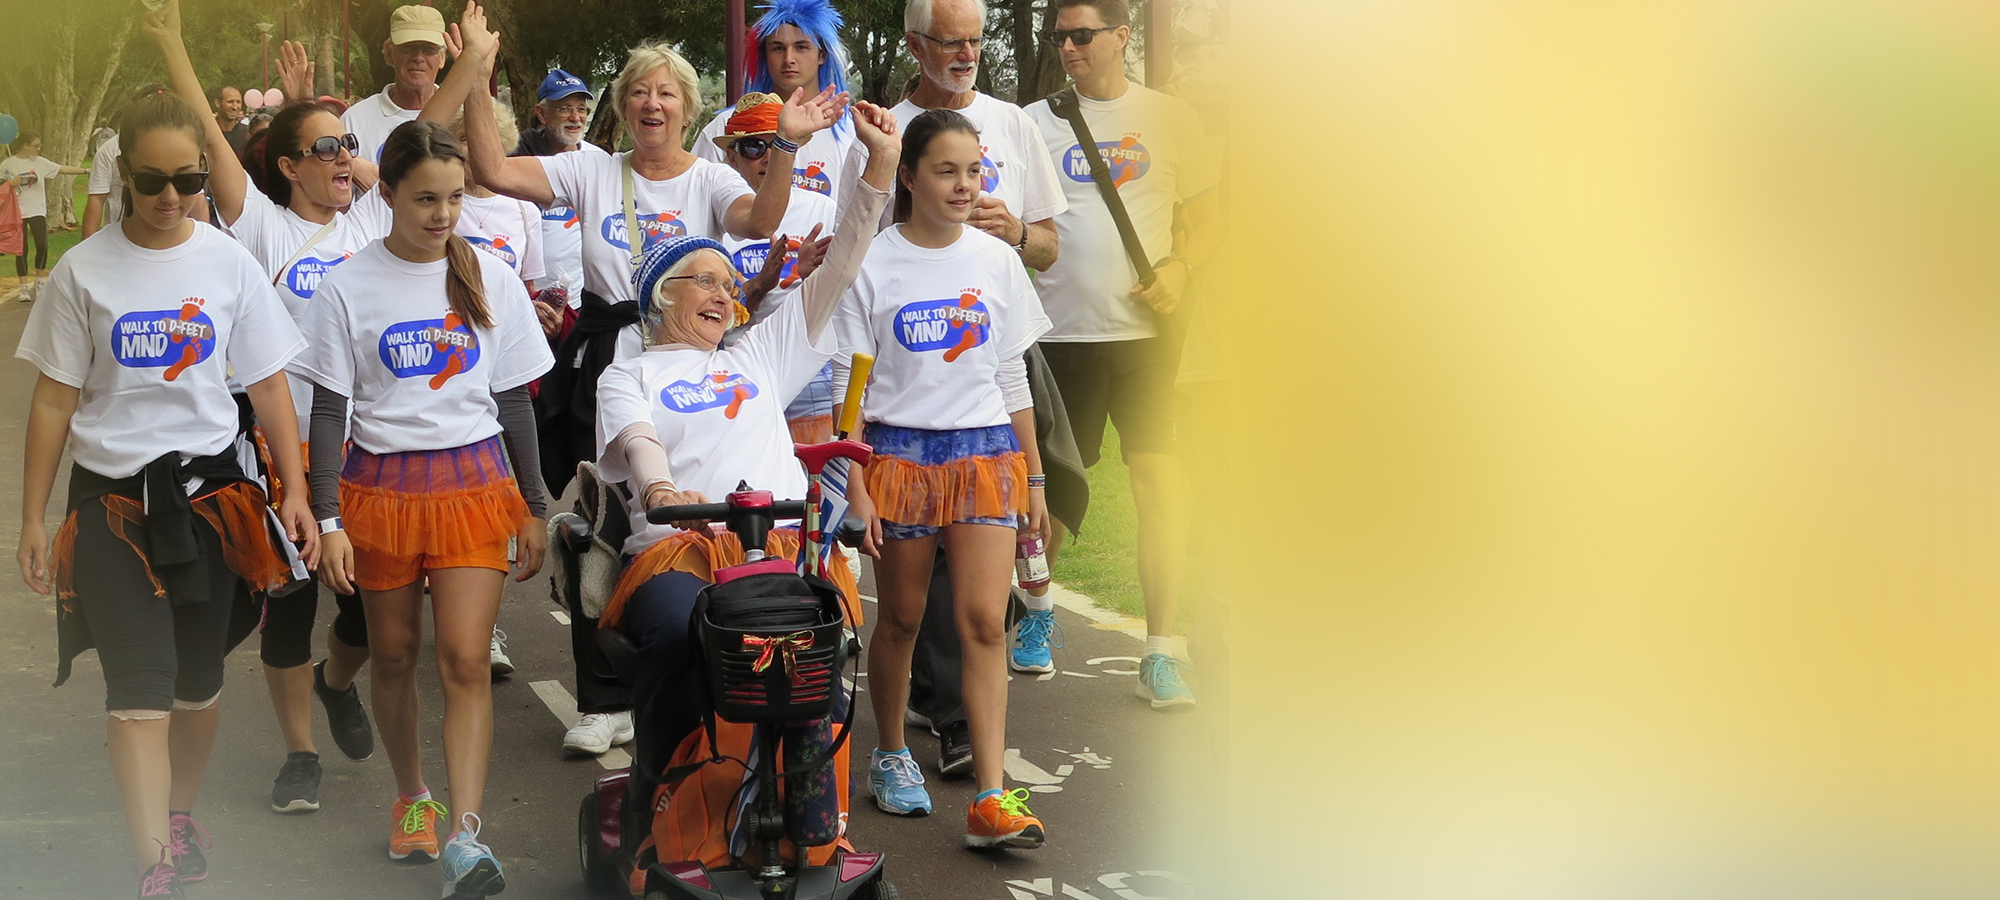 Donate Now   A tax-deductible donation of $2 or more will help us provide specialist care and support services to people living with MND and their families in WA   Donate now